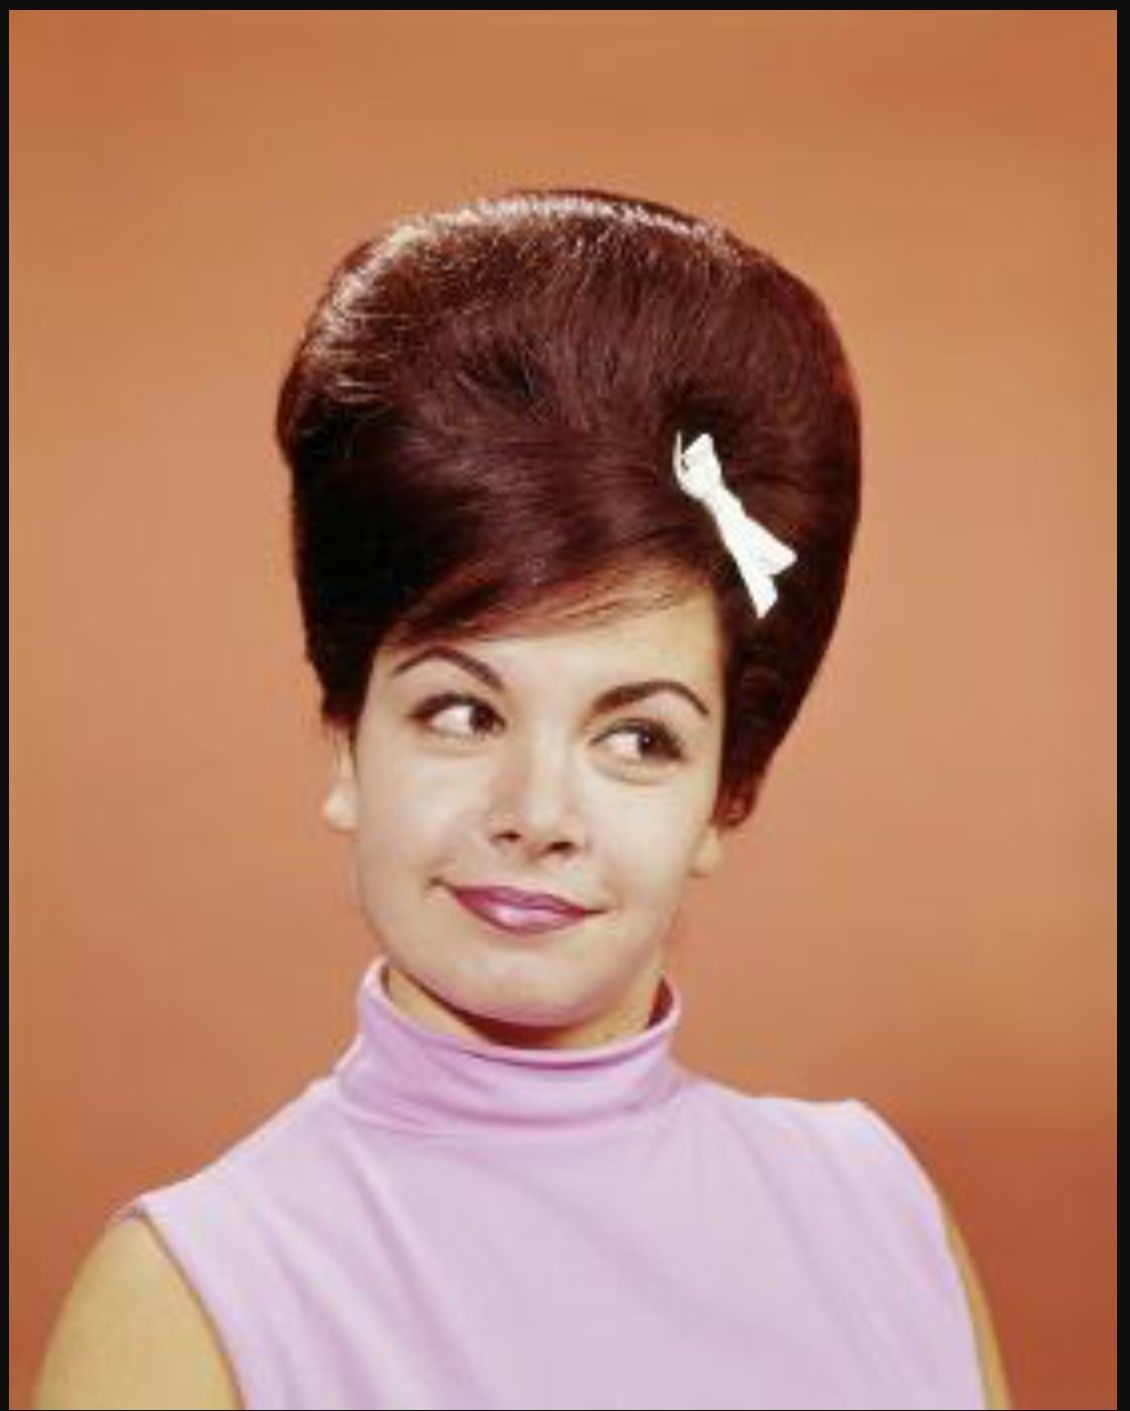 pin by dawn on 60's updo and bouffants | pinterest | 60 s and updo